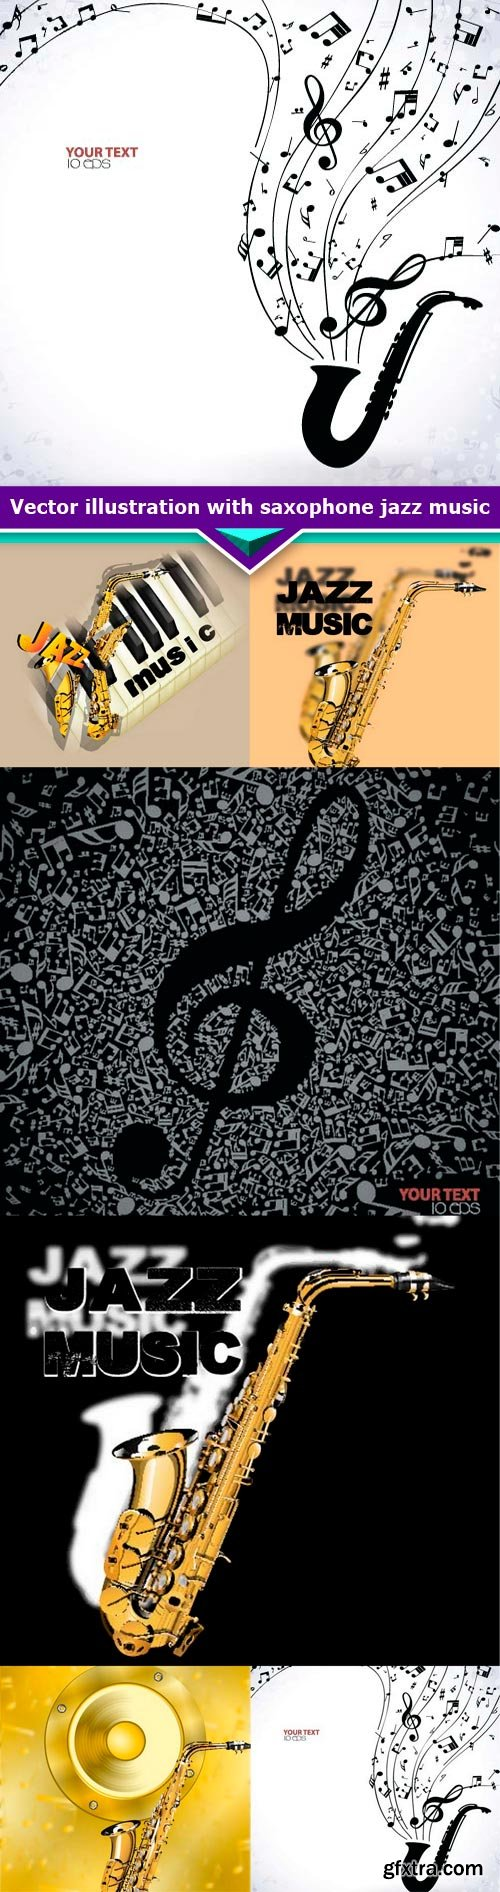 Vector illustration with saxophone jazz music 6x EPS